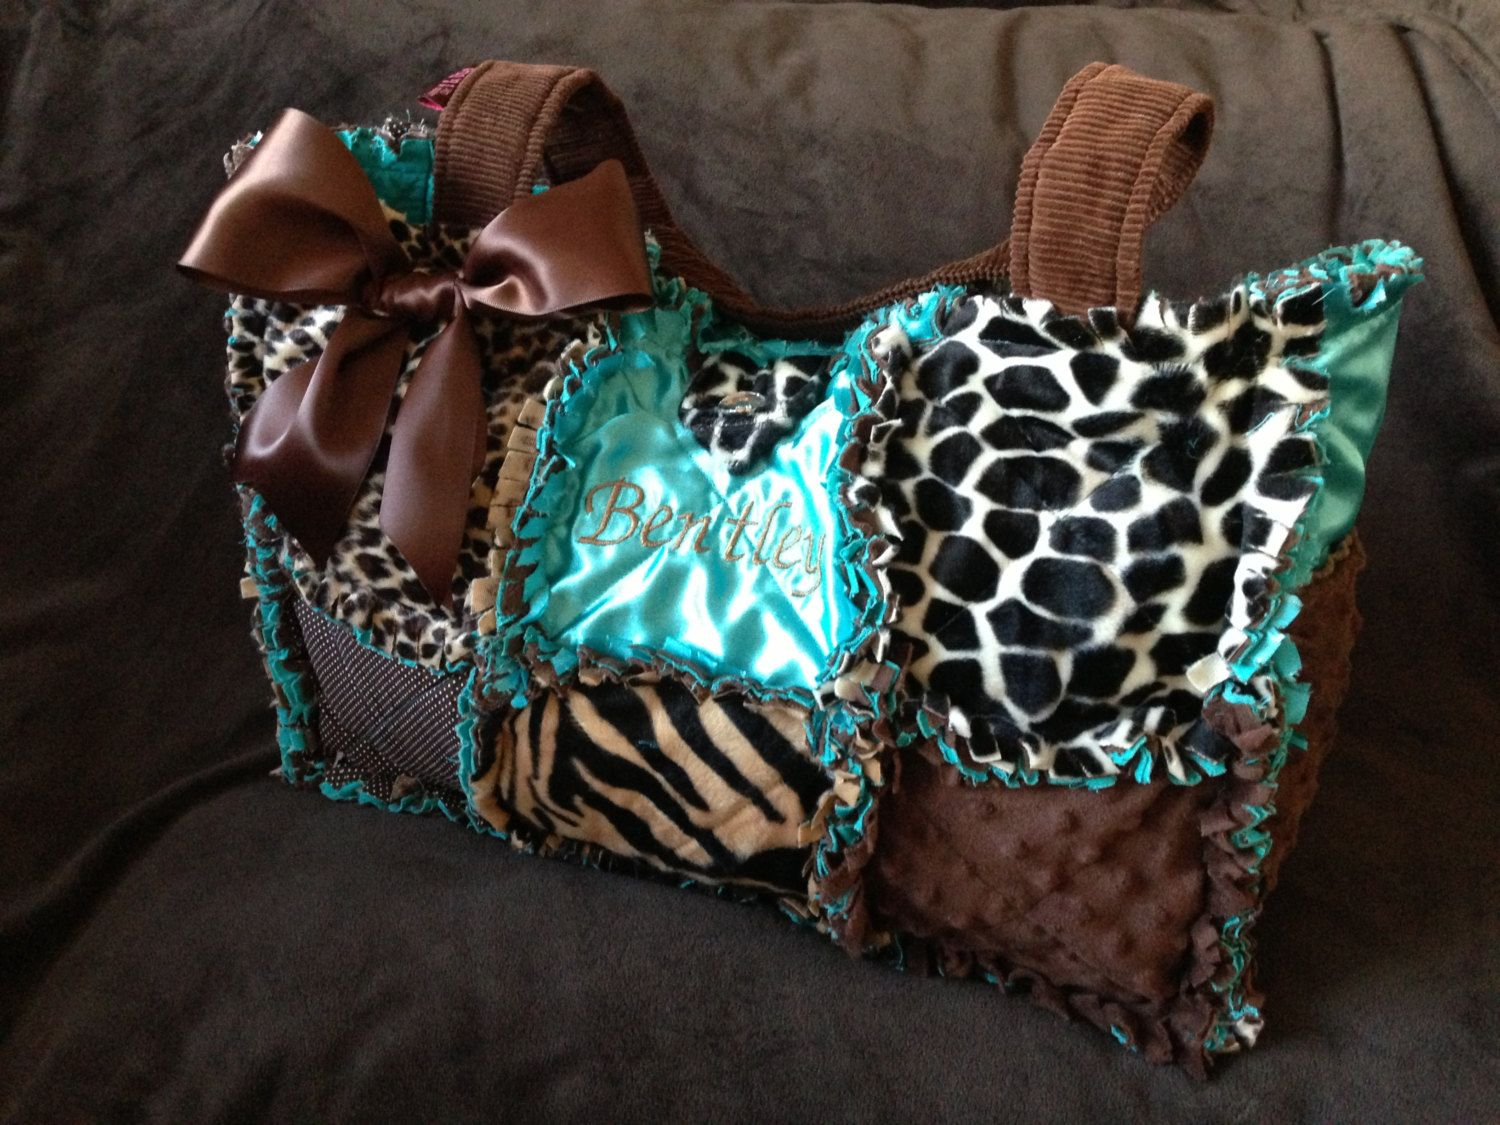 Custom Rag Quilted Diaper bag for Girl or Boy Teal, Leopard ... : quilted camo diaper bag - Adamdwight.com